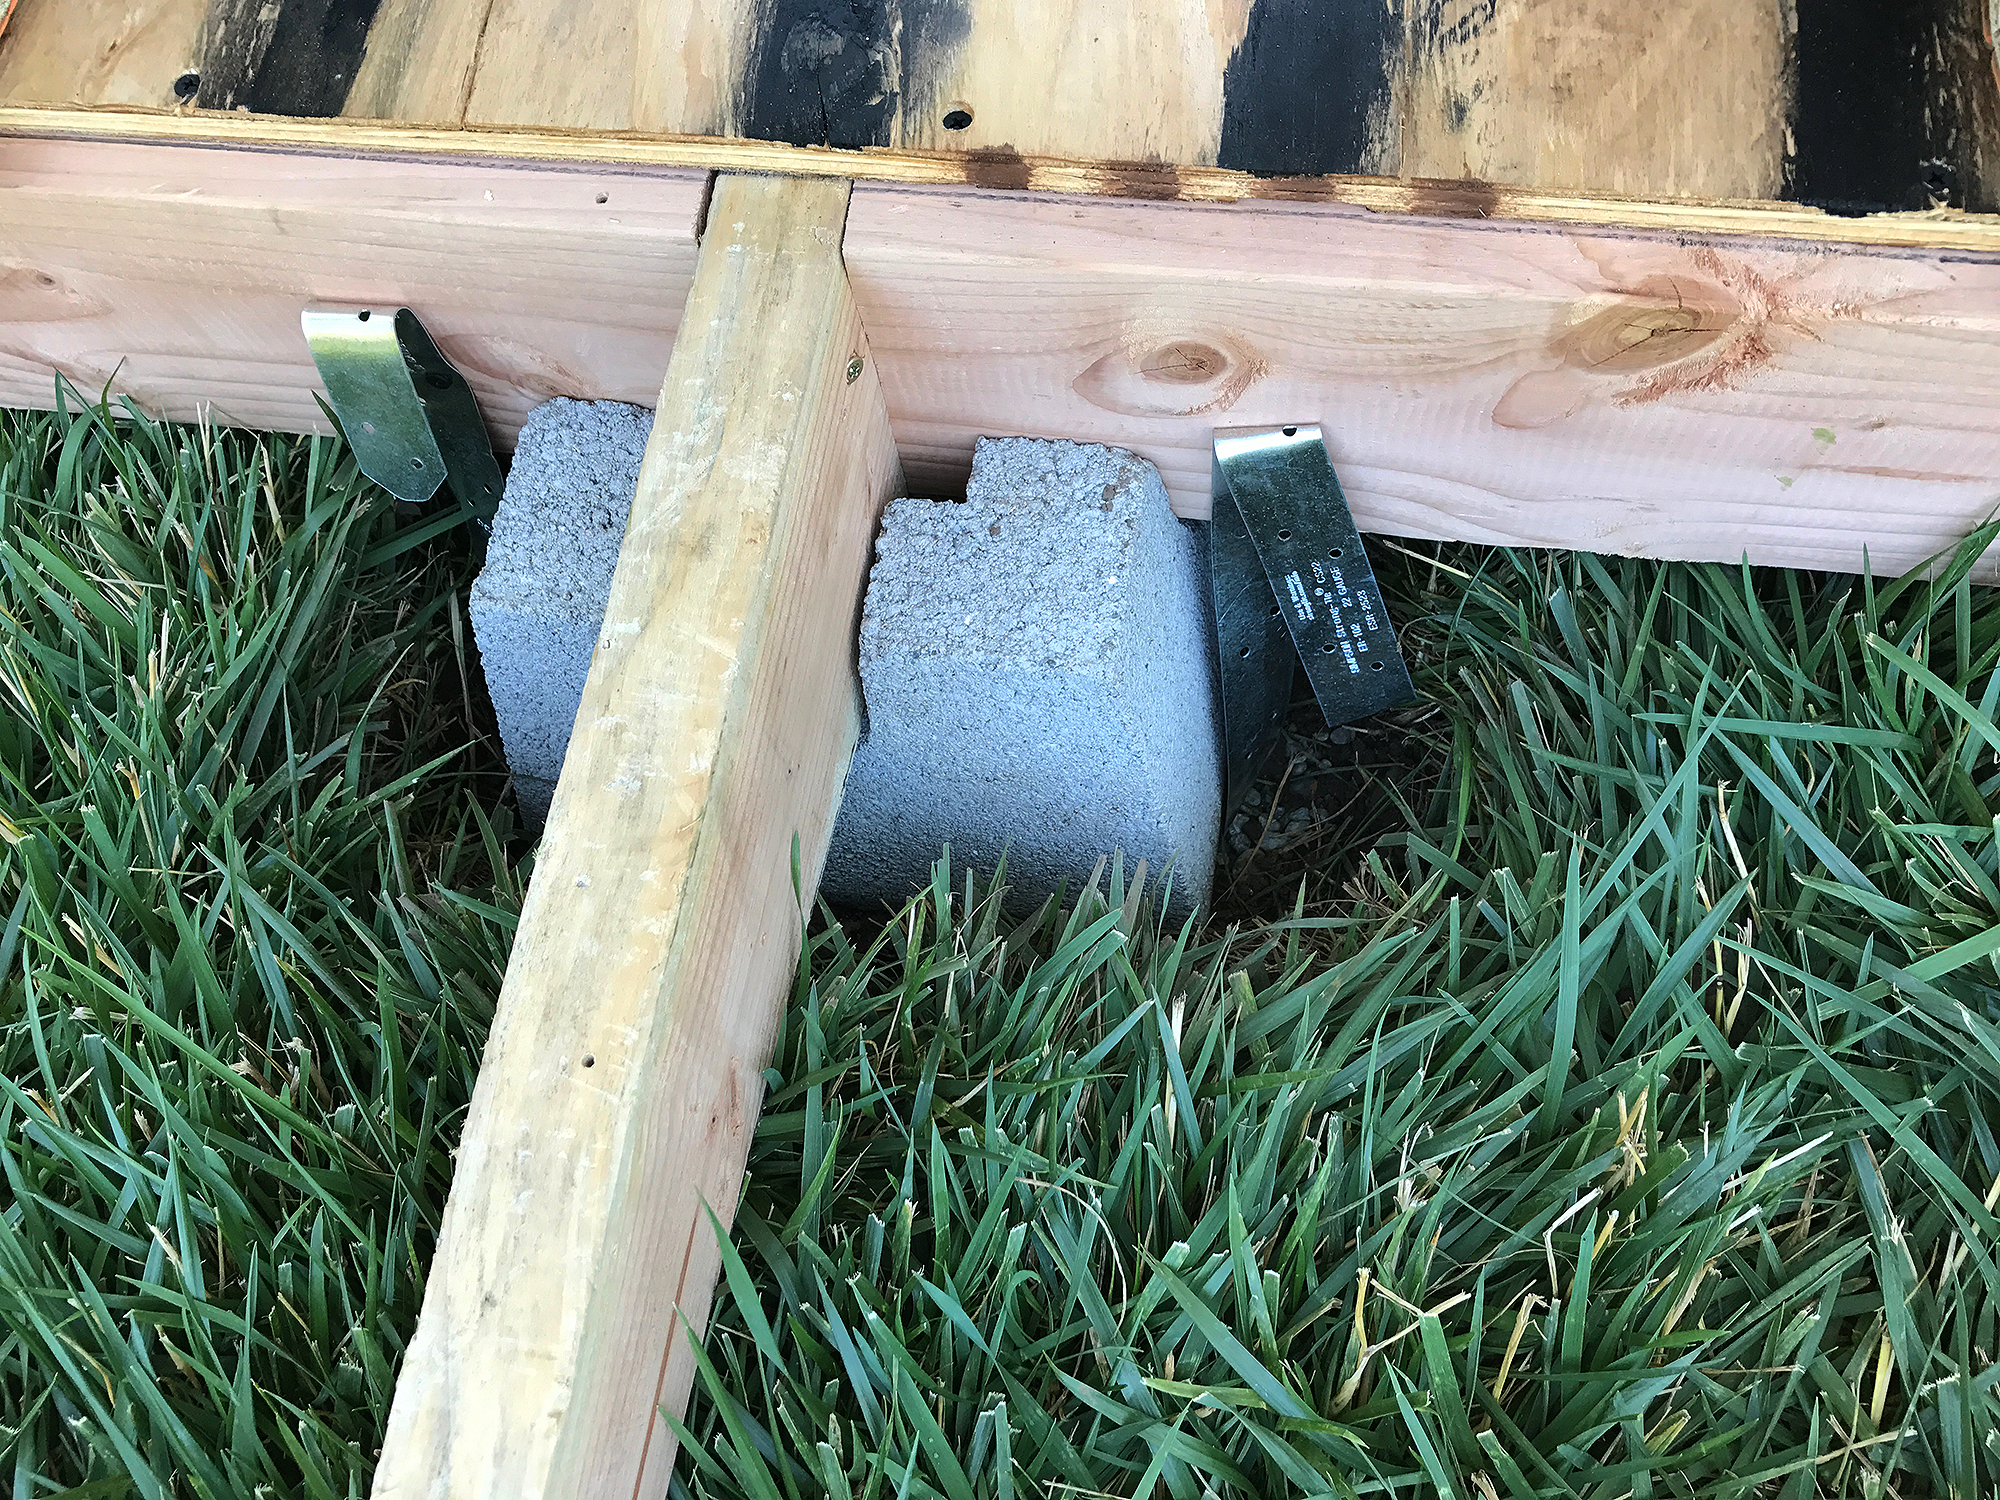 blocks are sunken into the lawn to support the frame